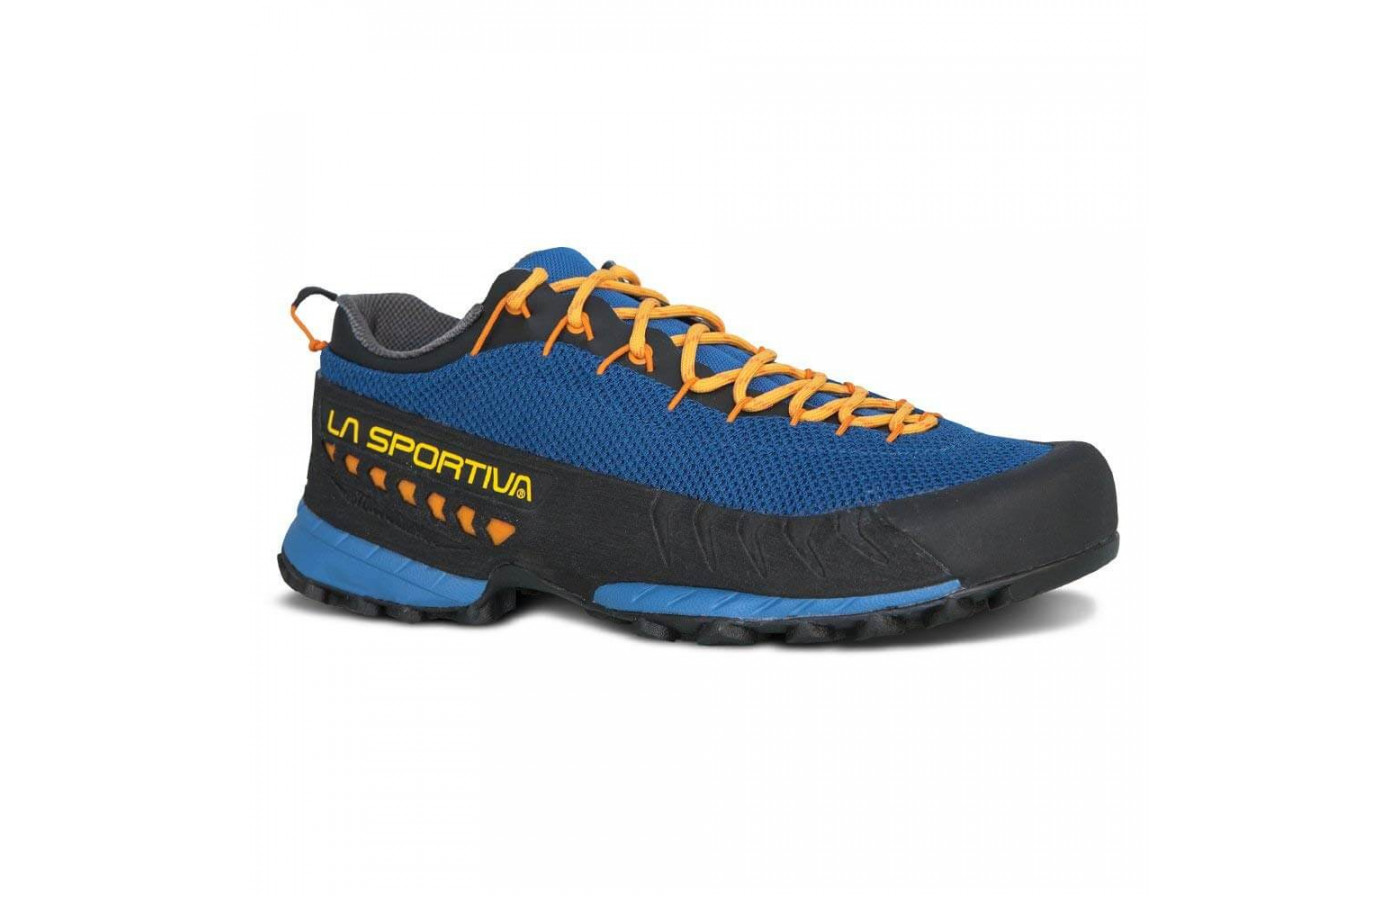 La Sportiva TX3 are extremely grippy for traversing trails.